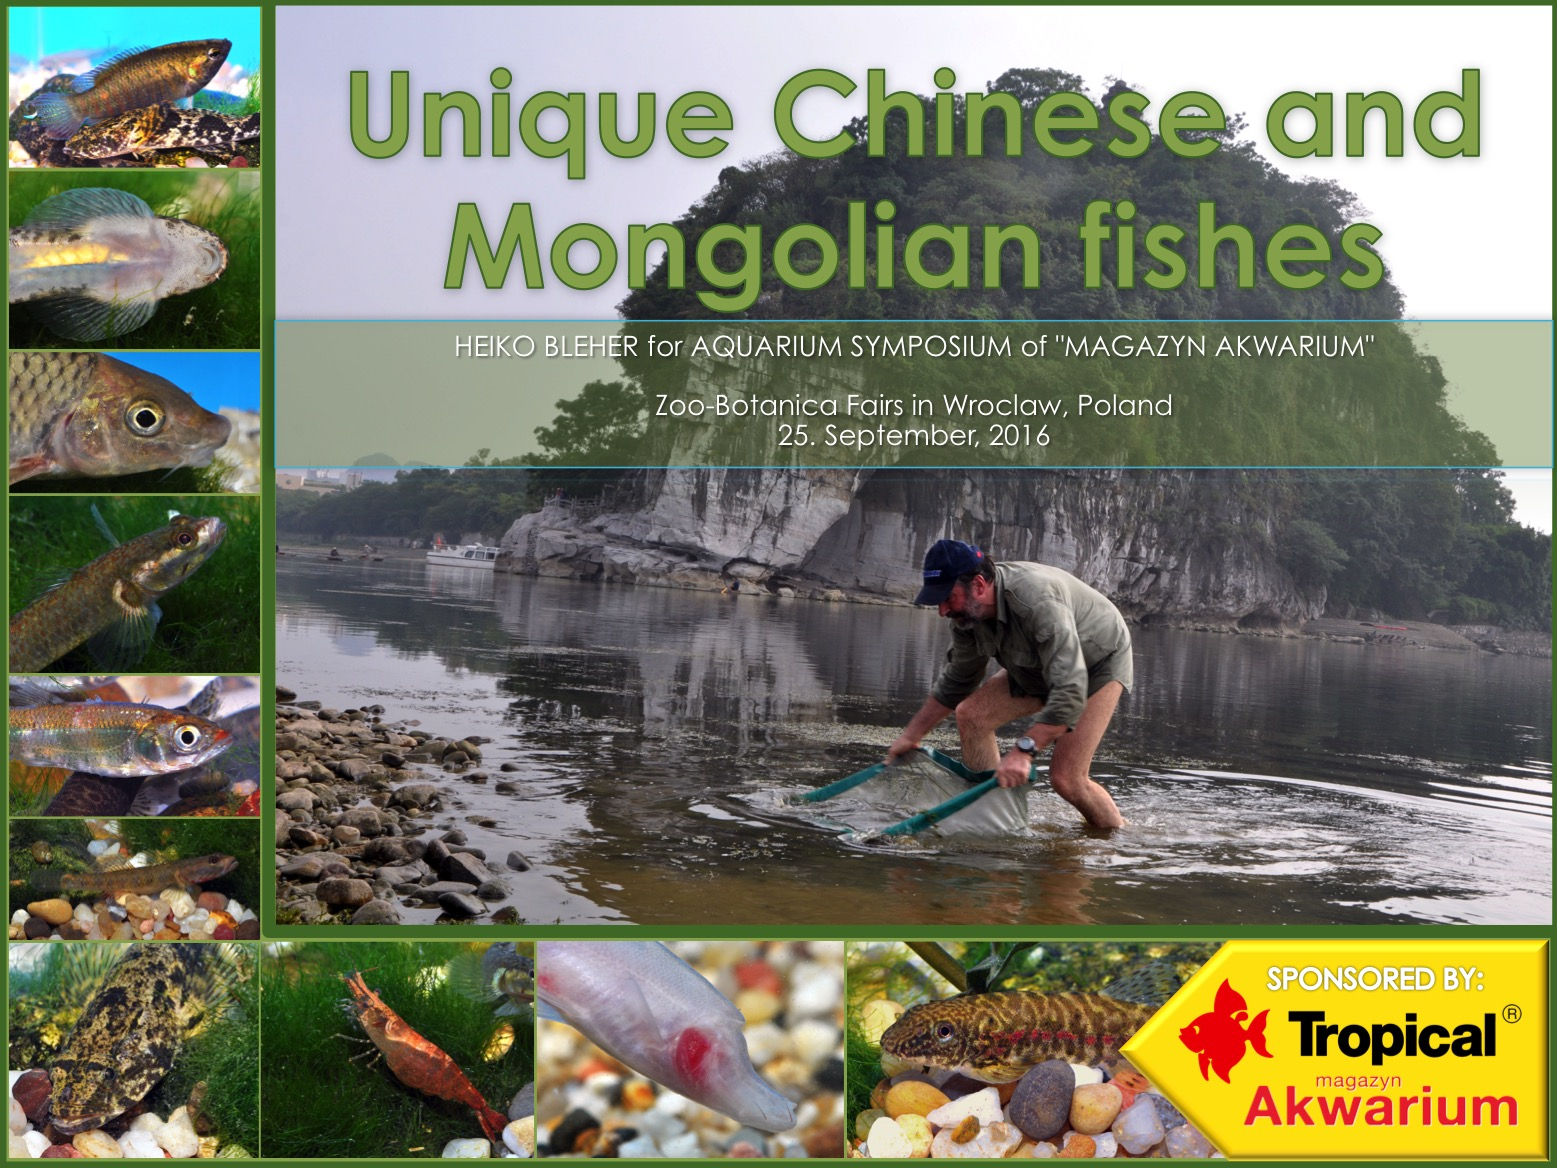 CHINESE FISHES_WROCLAW SYMPOSIUM_25-09-16